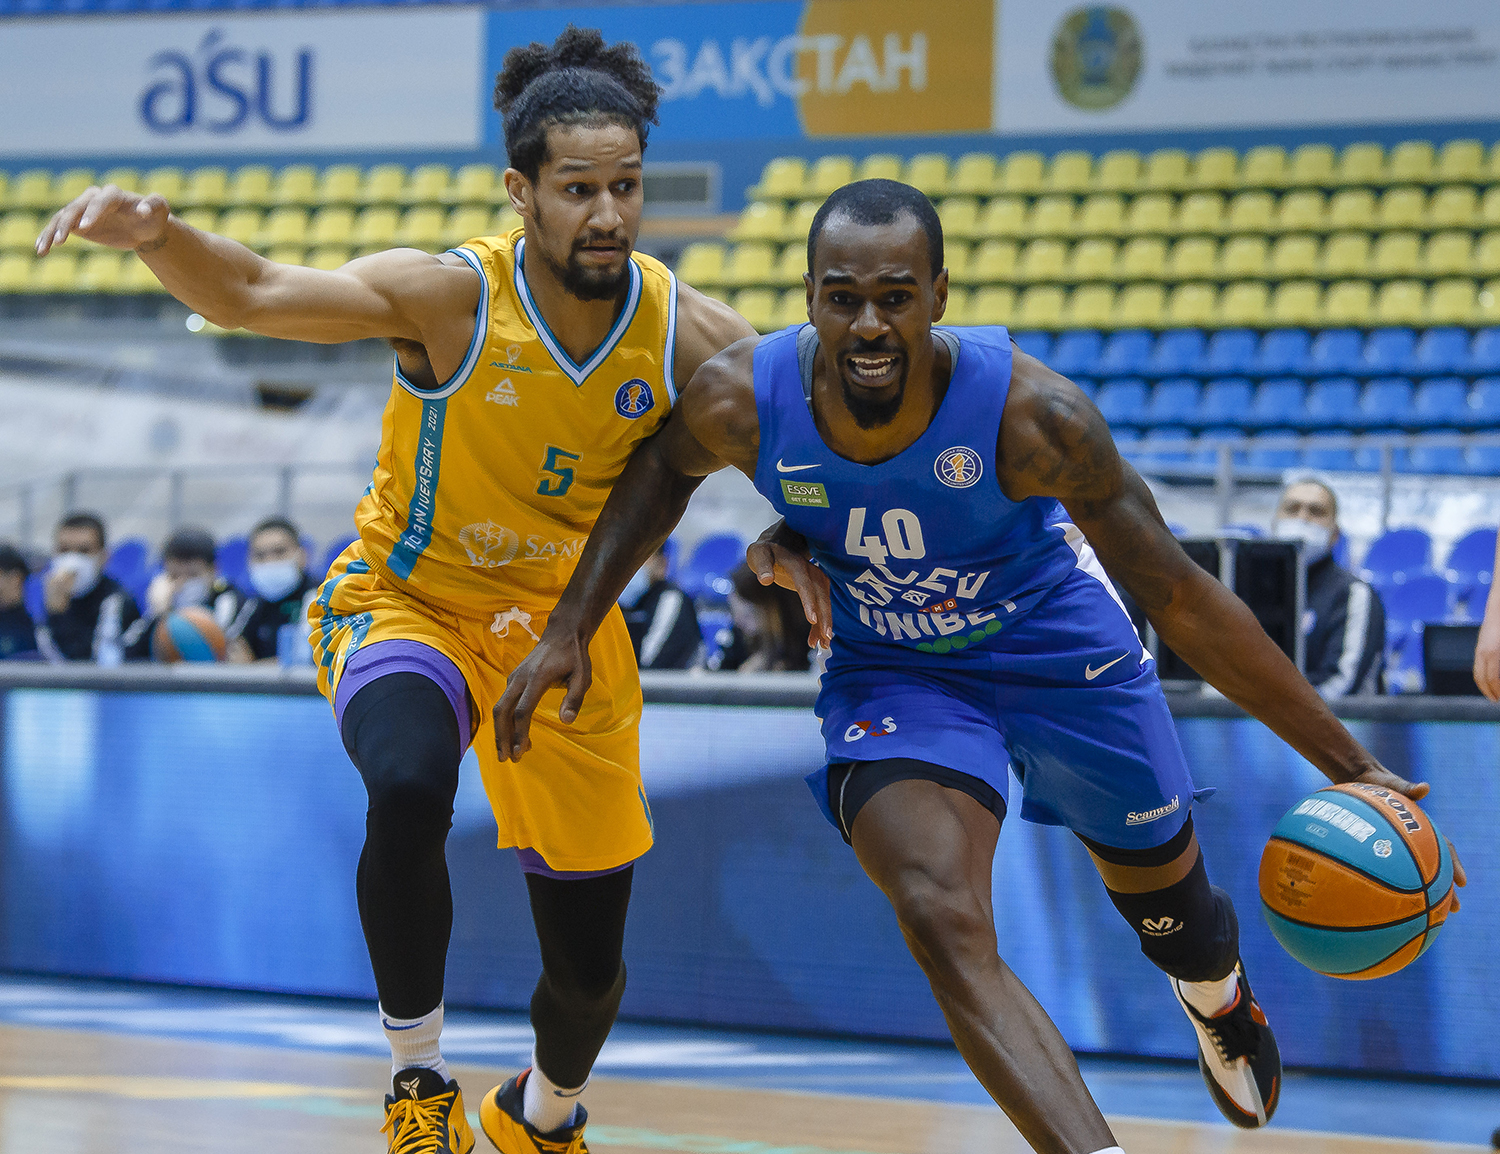 Astana take 5th consecutive defeat from Kalev